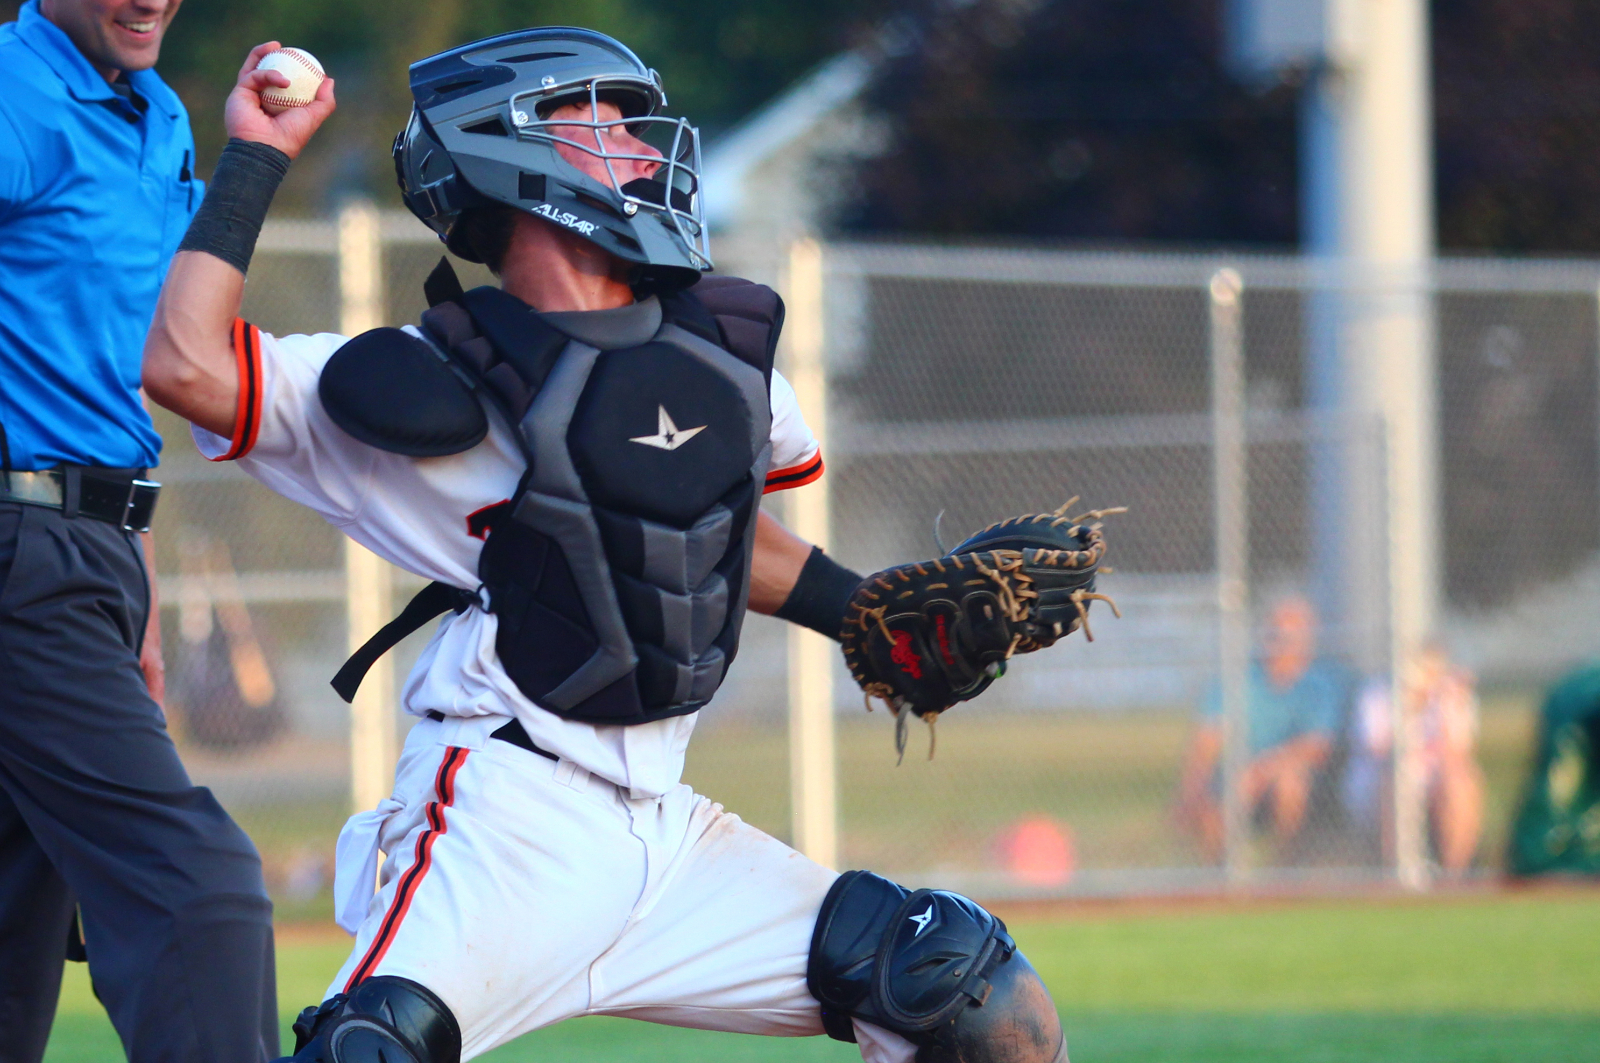 Photo from Valley vs Urbandale baseball game.